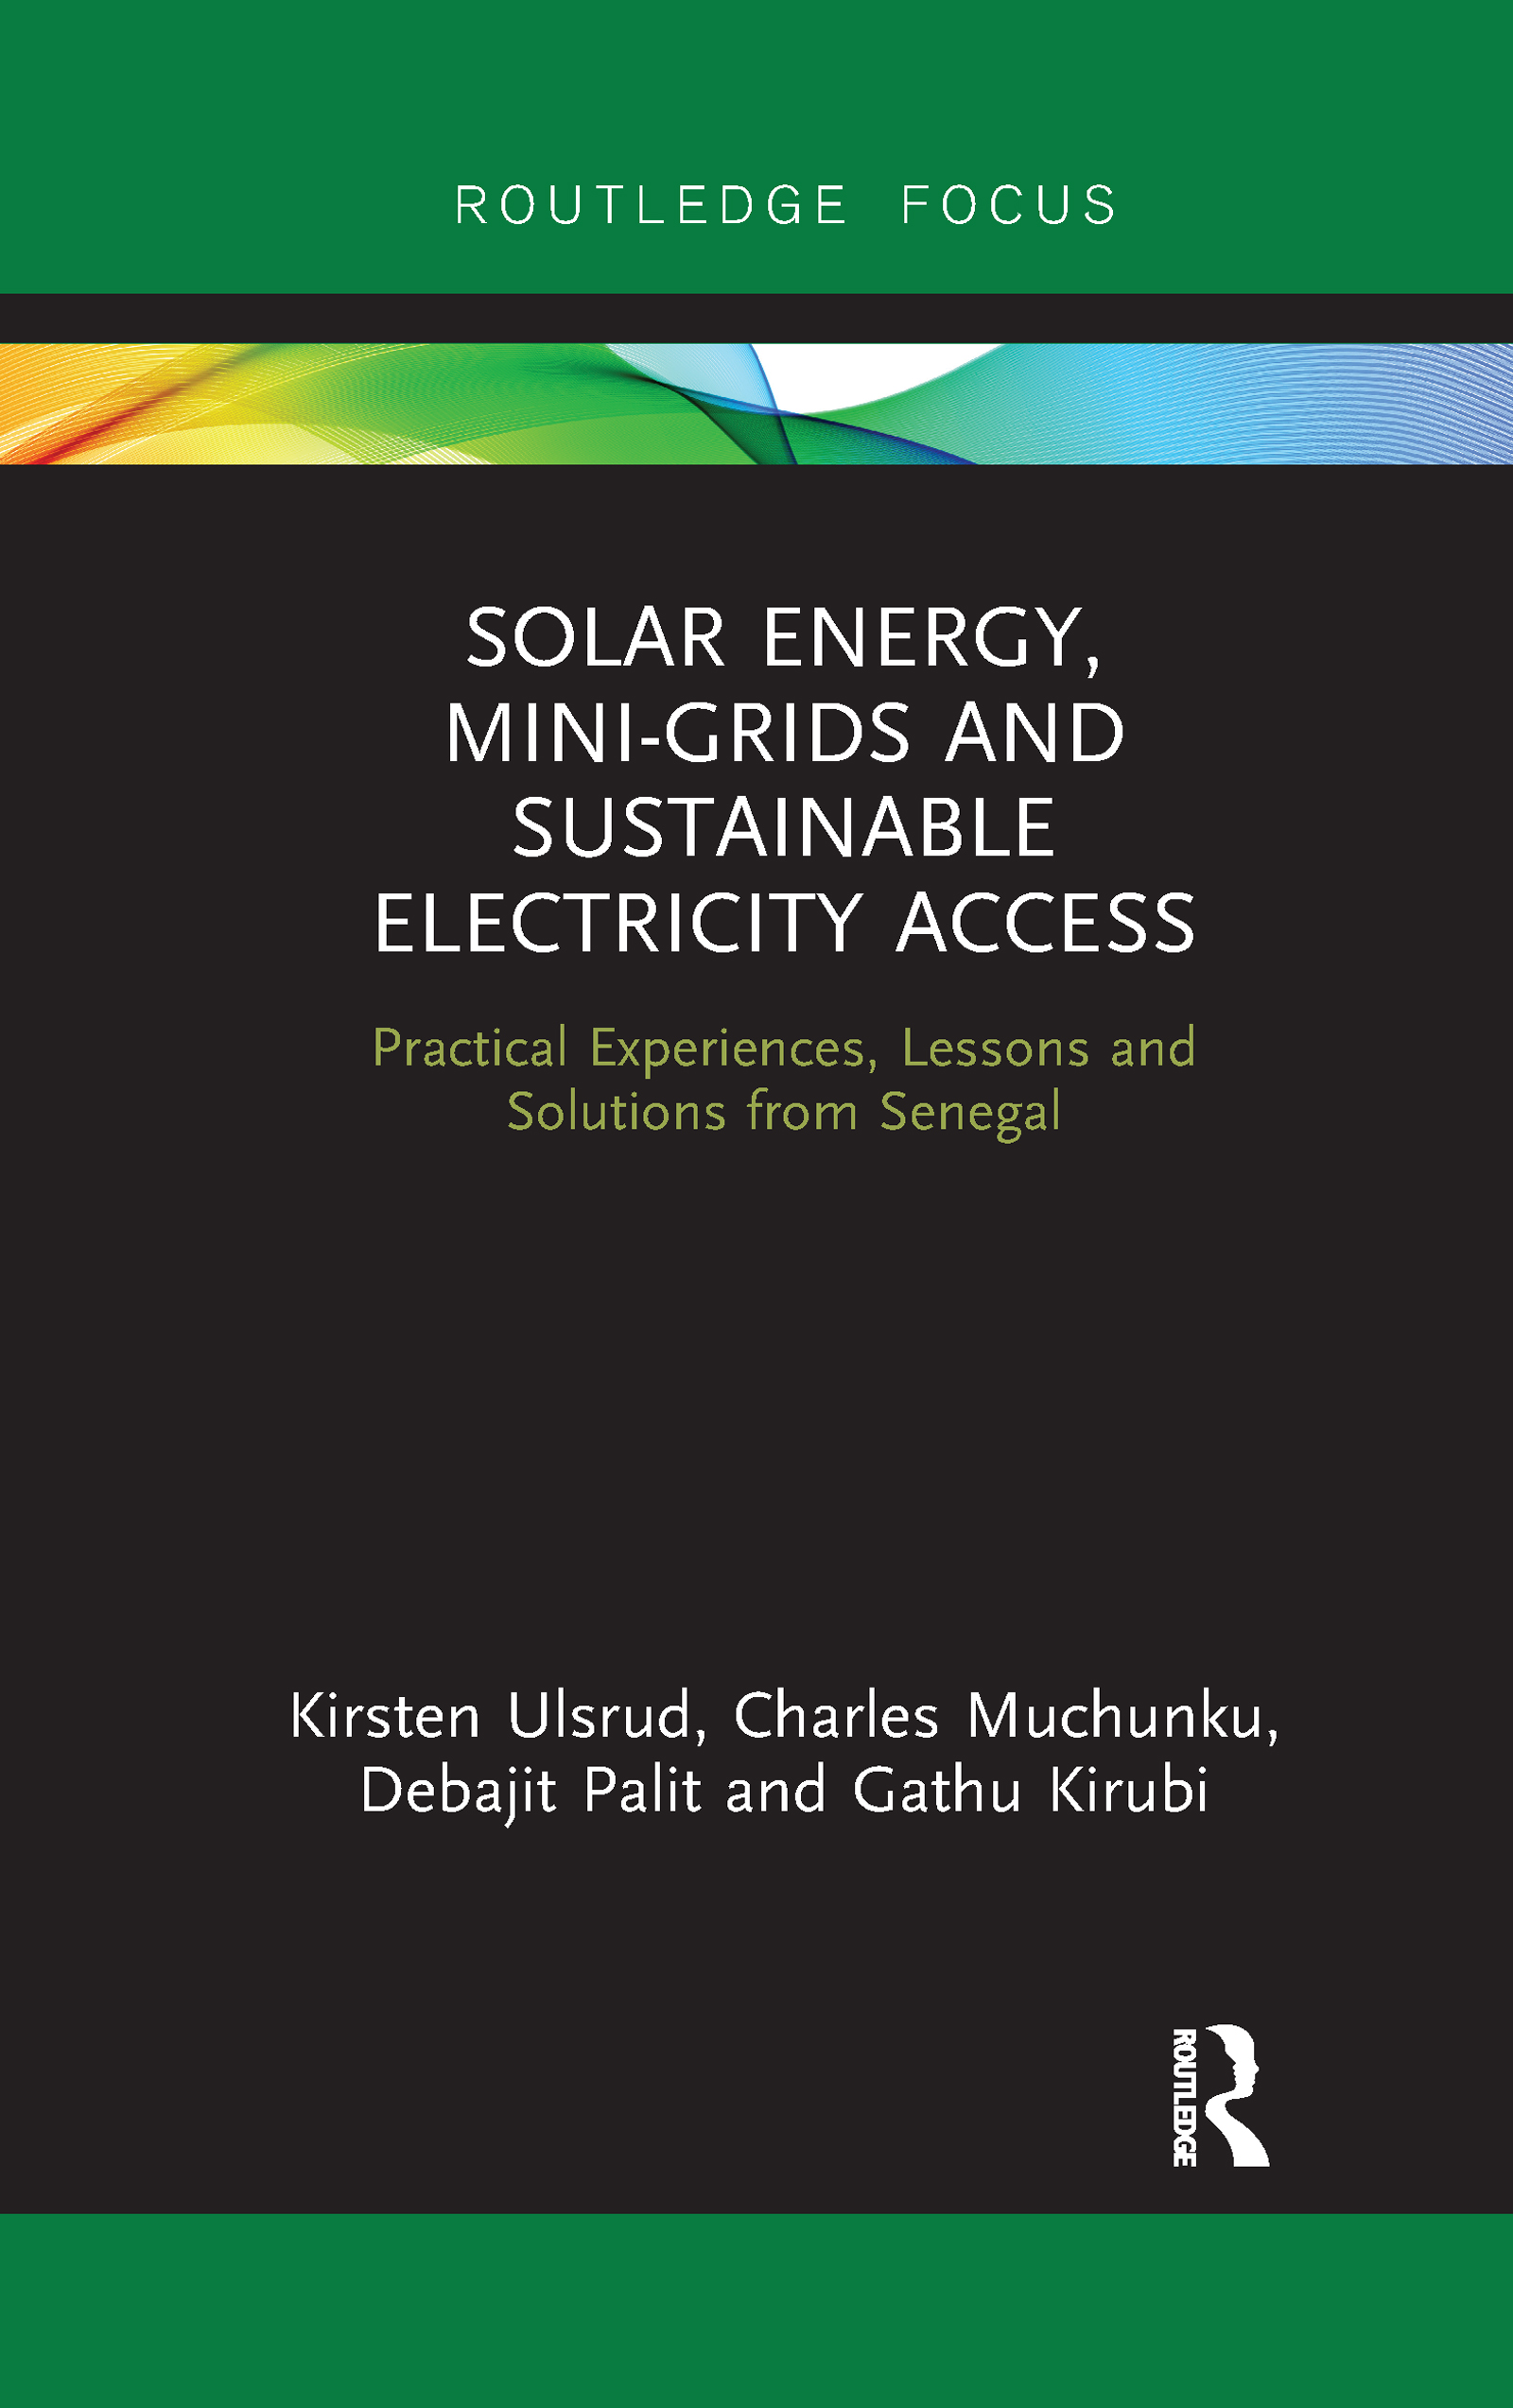 Solar Energy, Mini-grids and Sustainable Electricity Access